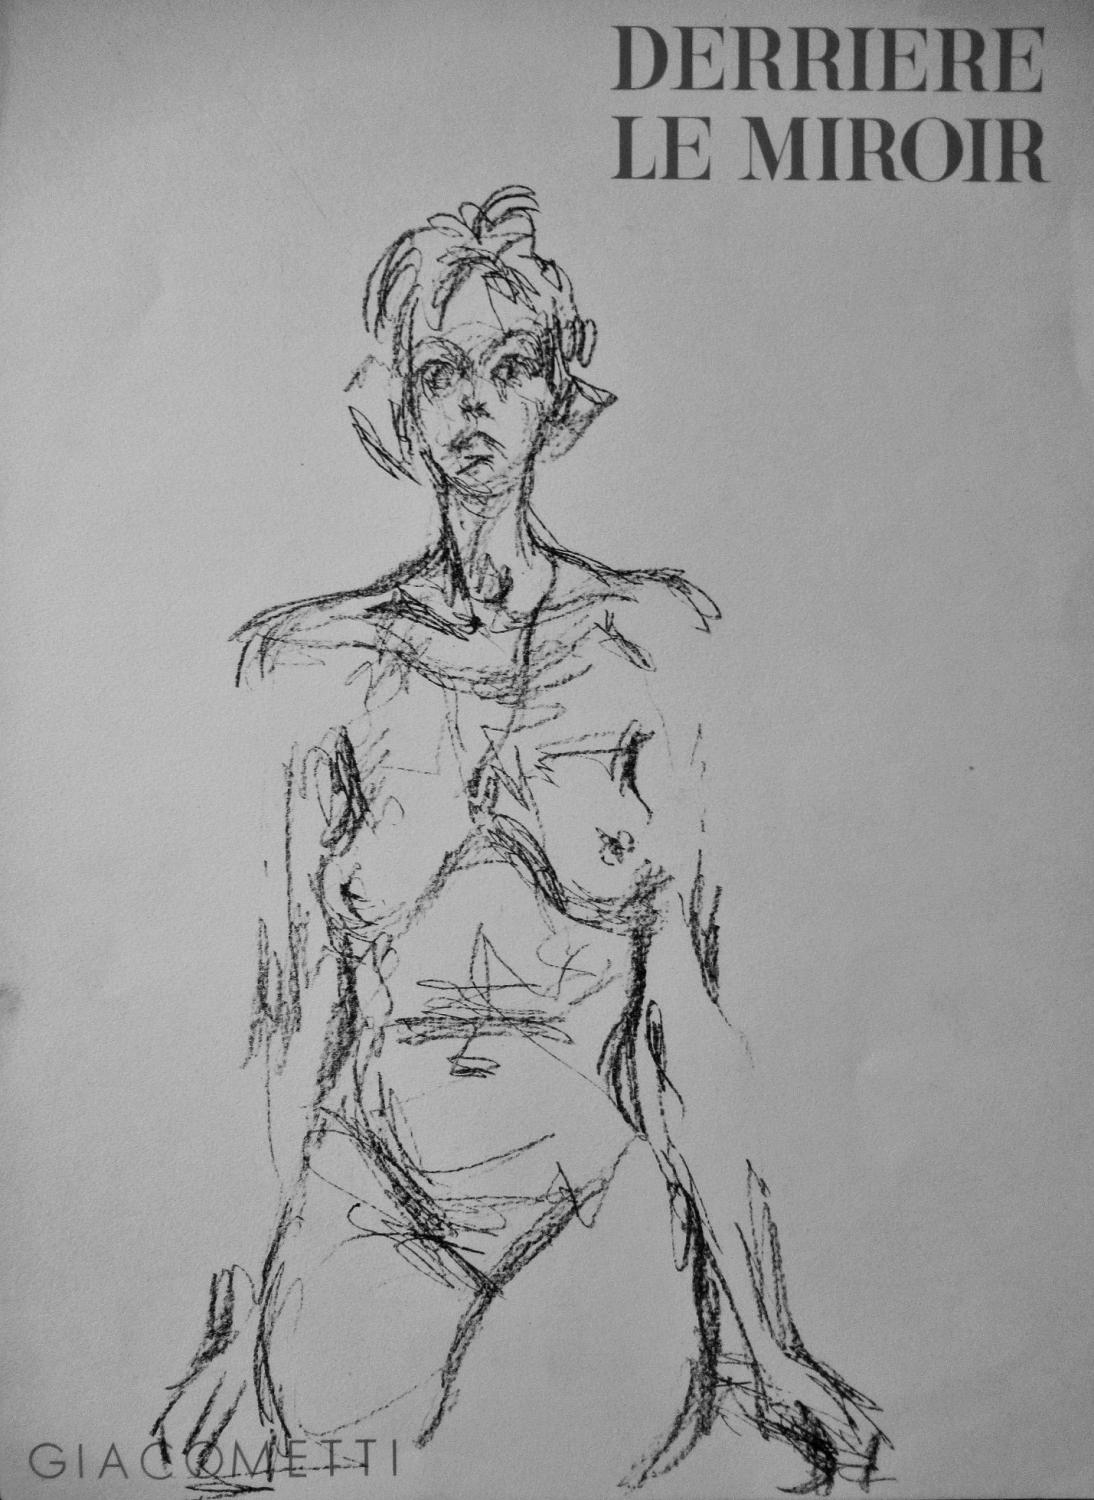 DERRIERE_LE_MIROIR_FRONT_COVER__ORIGINAL_LITHOGRAPH_GIACOMETTI_Very_Good